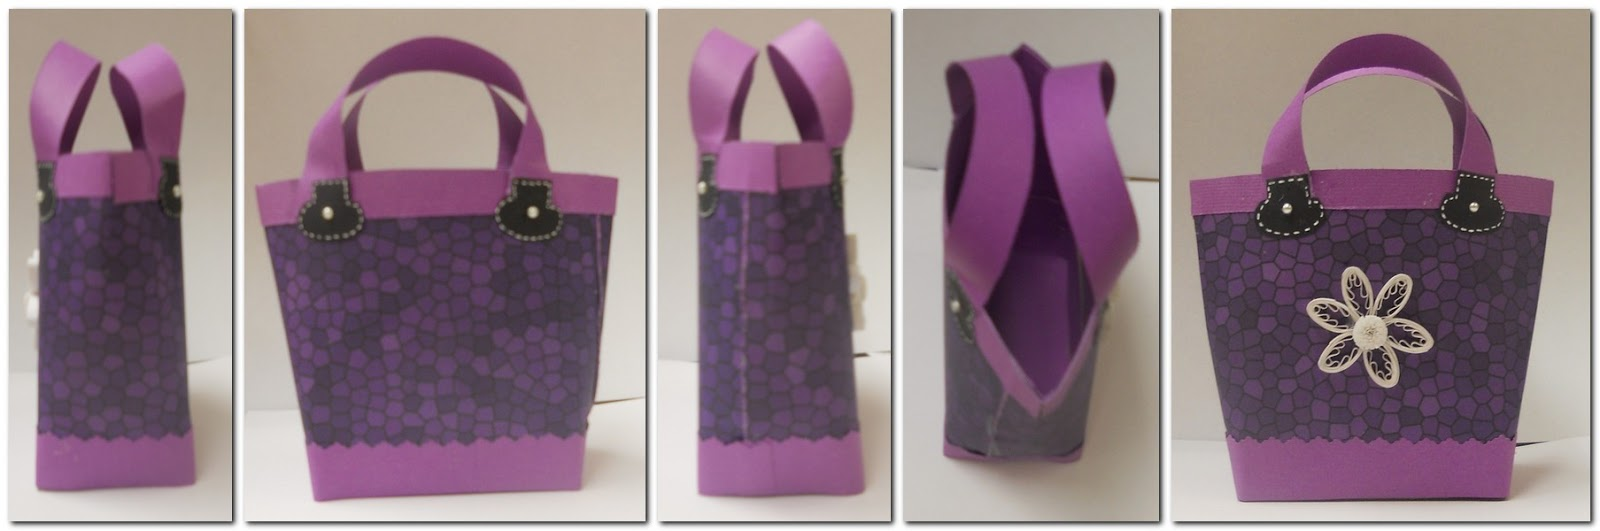 Staceysmile Creations: 2 Birthday Purses with matching card ...